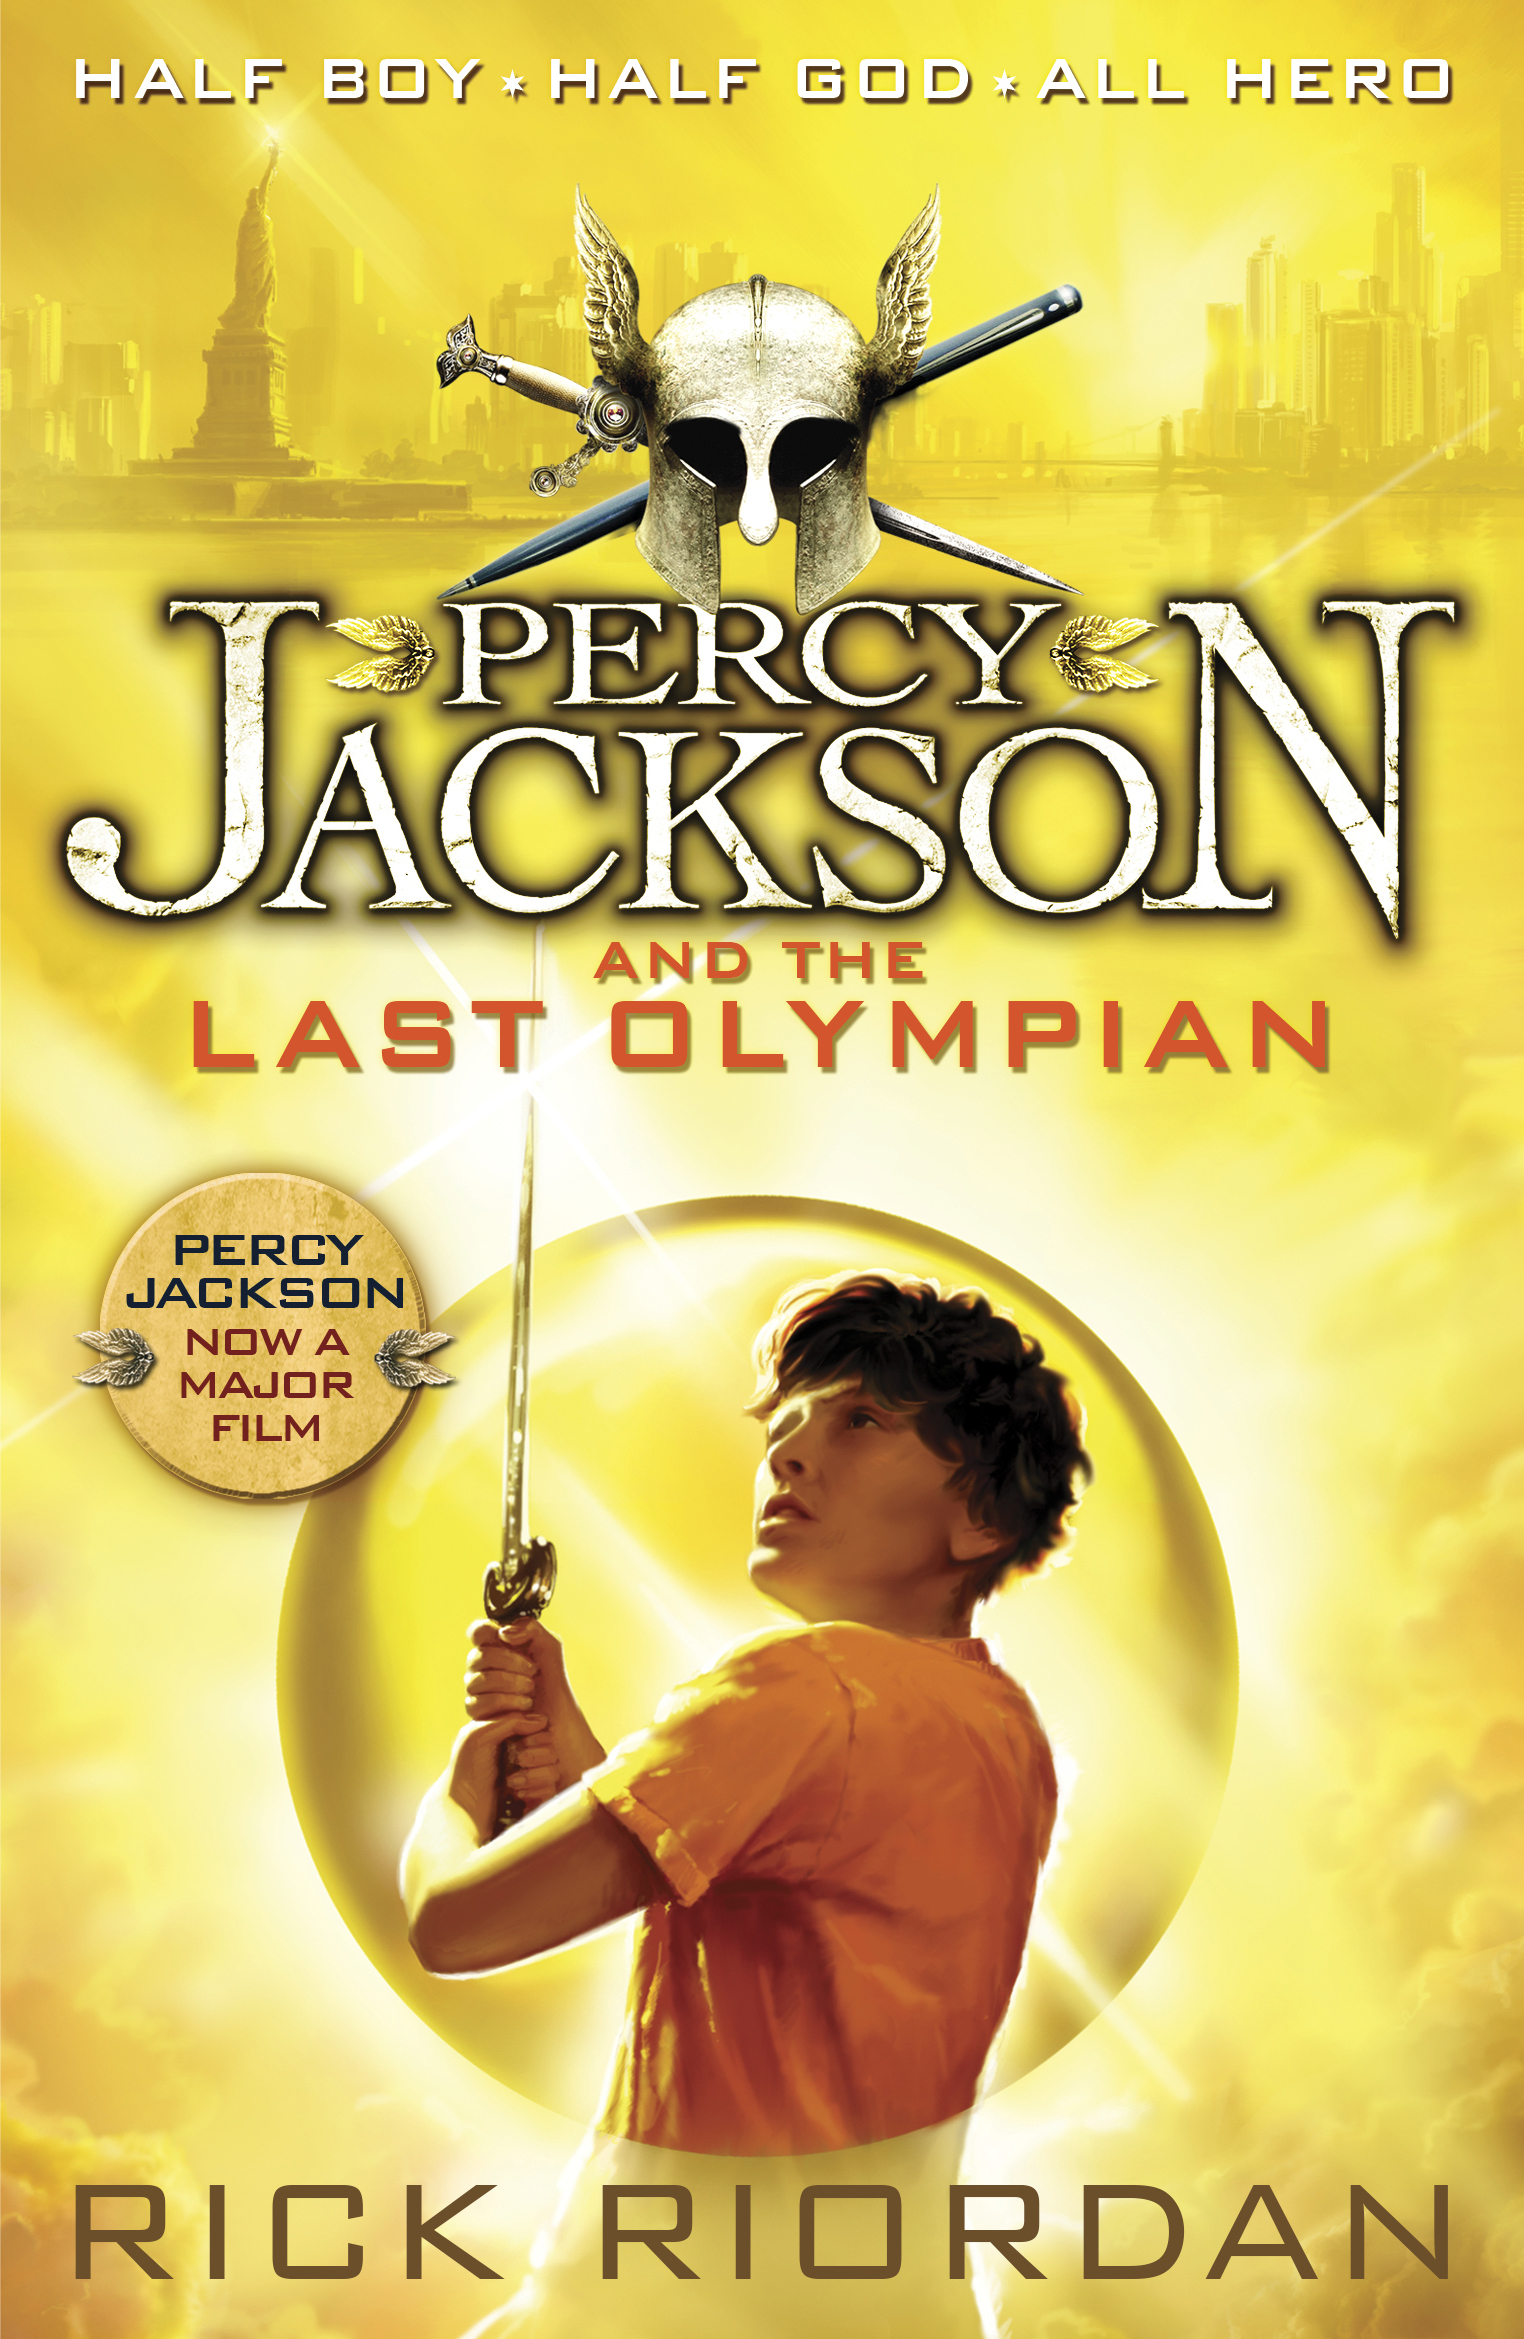 Percy Jackson and the Last Olympian by Rick Riordan, ISBN: 9780141962306